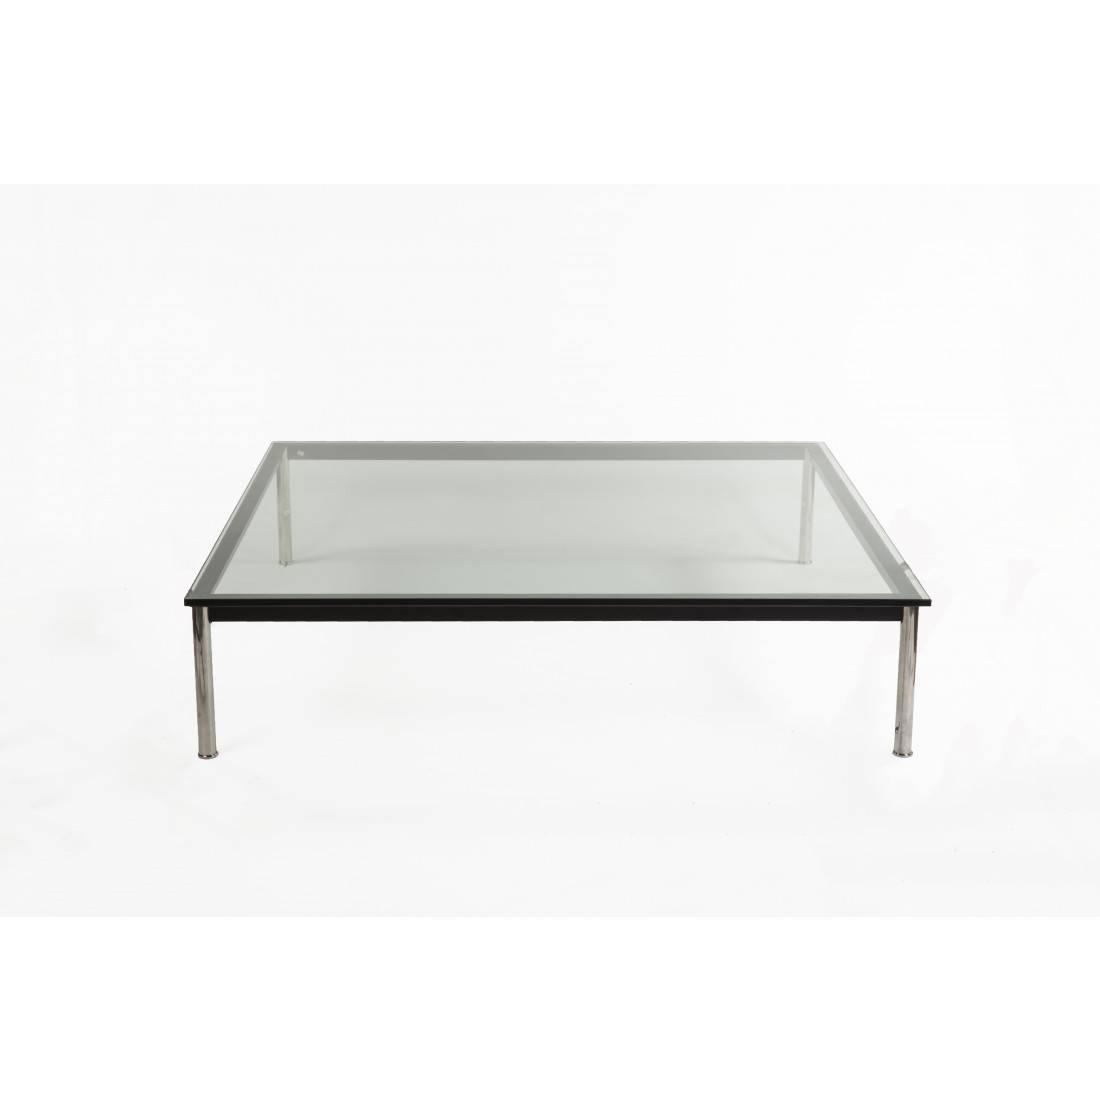 Mid Century Modern Reproduction Lc10 Square Low Coffee Pertaining To Large Square Low Coffee Tables (View 16 of 30)